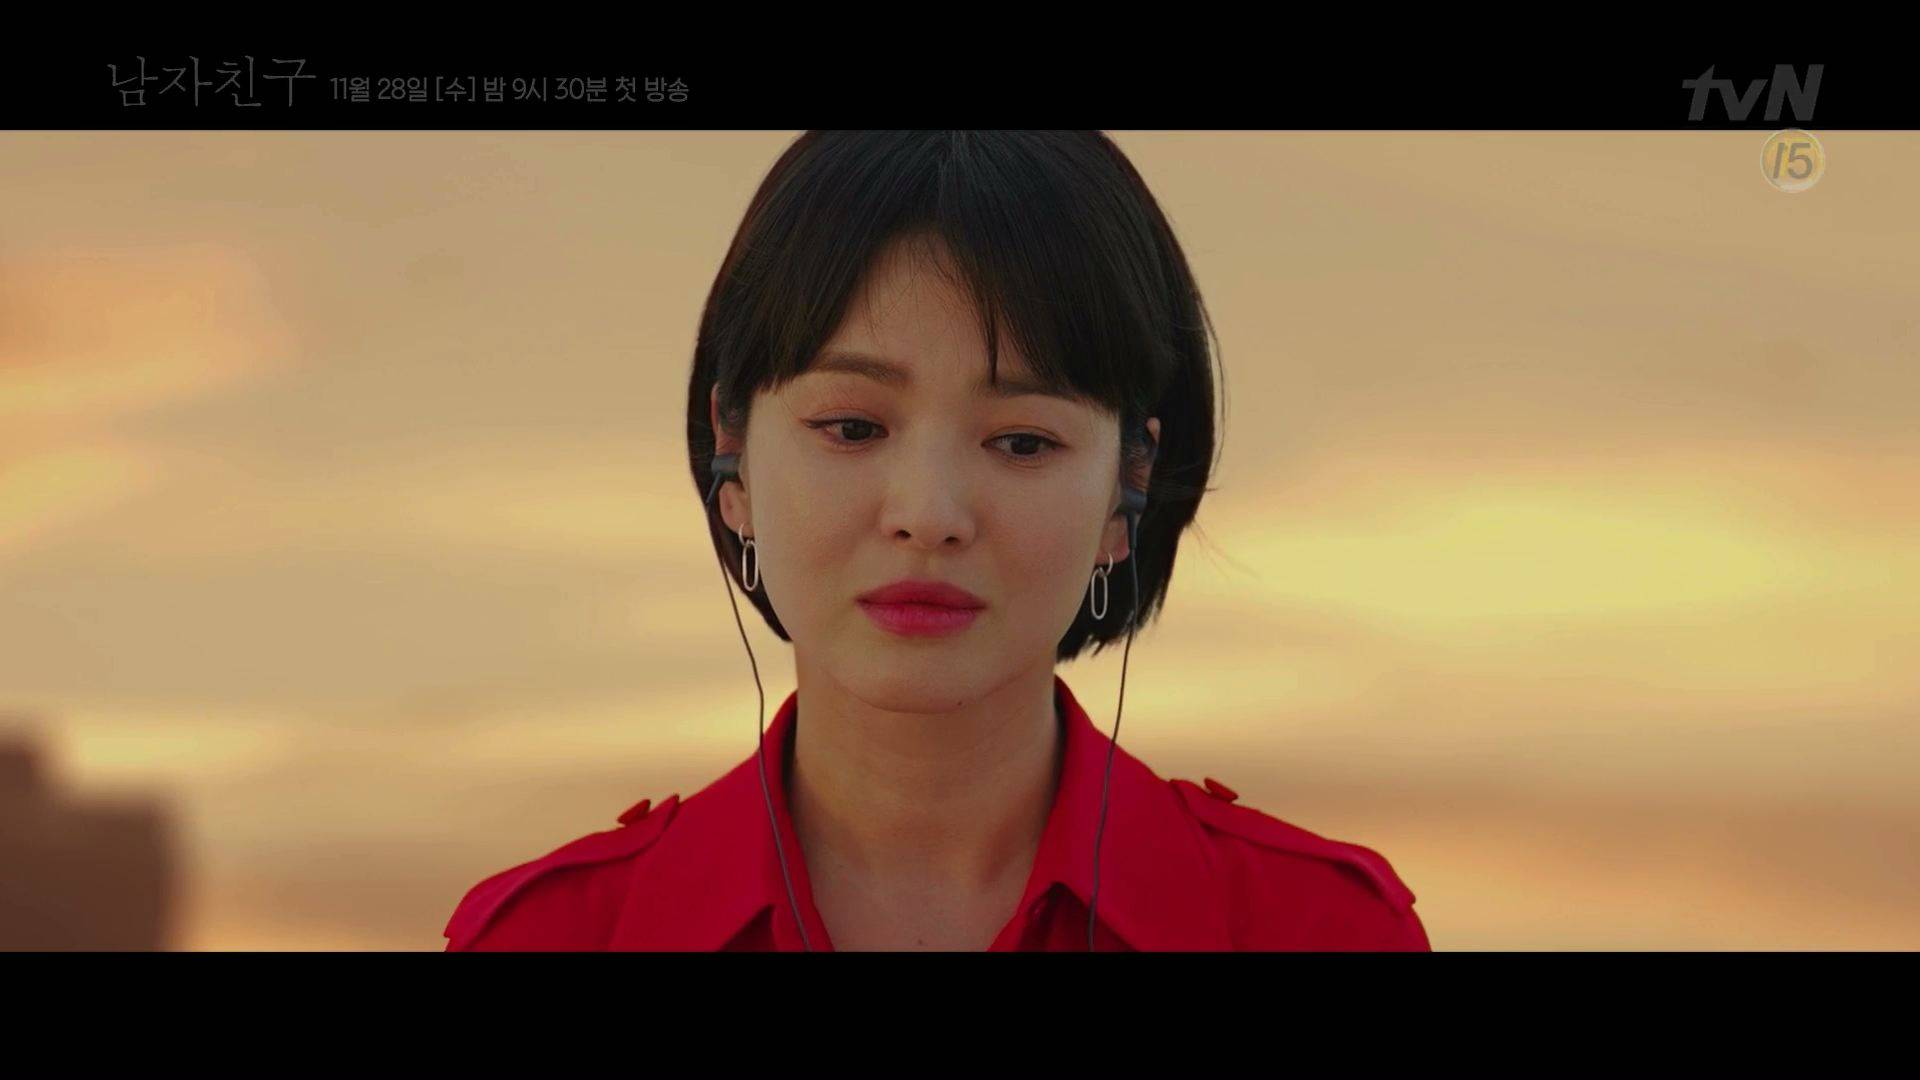 Video + Photo] Song Hye-kyo Is Sad and Lonely in Newest Teaser for